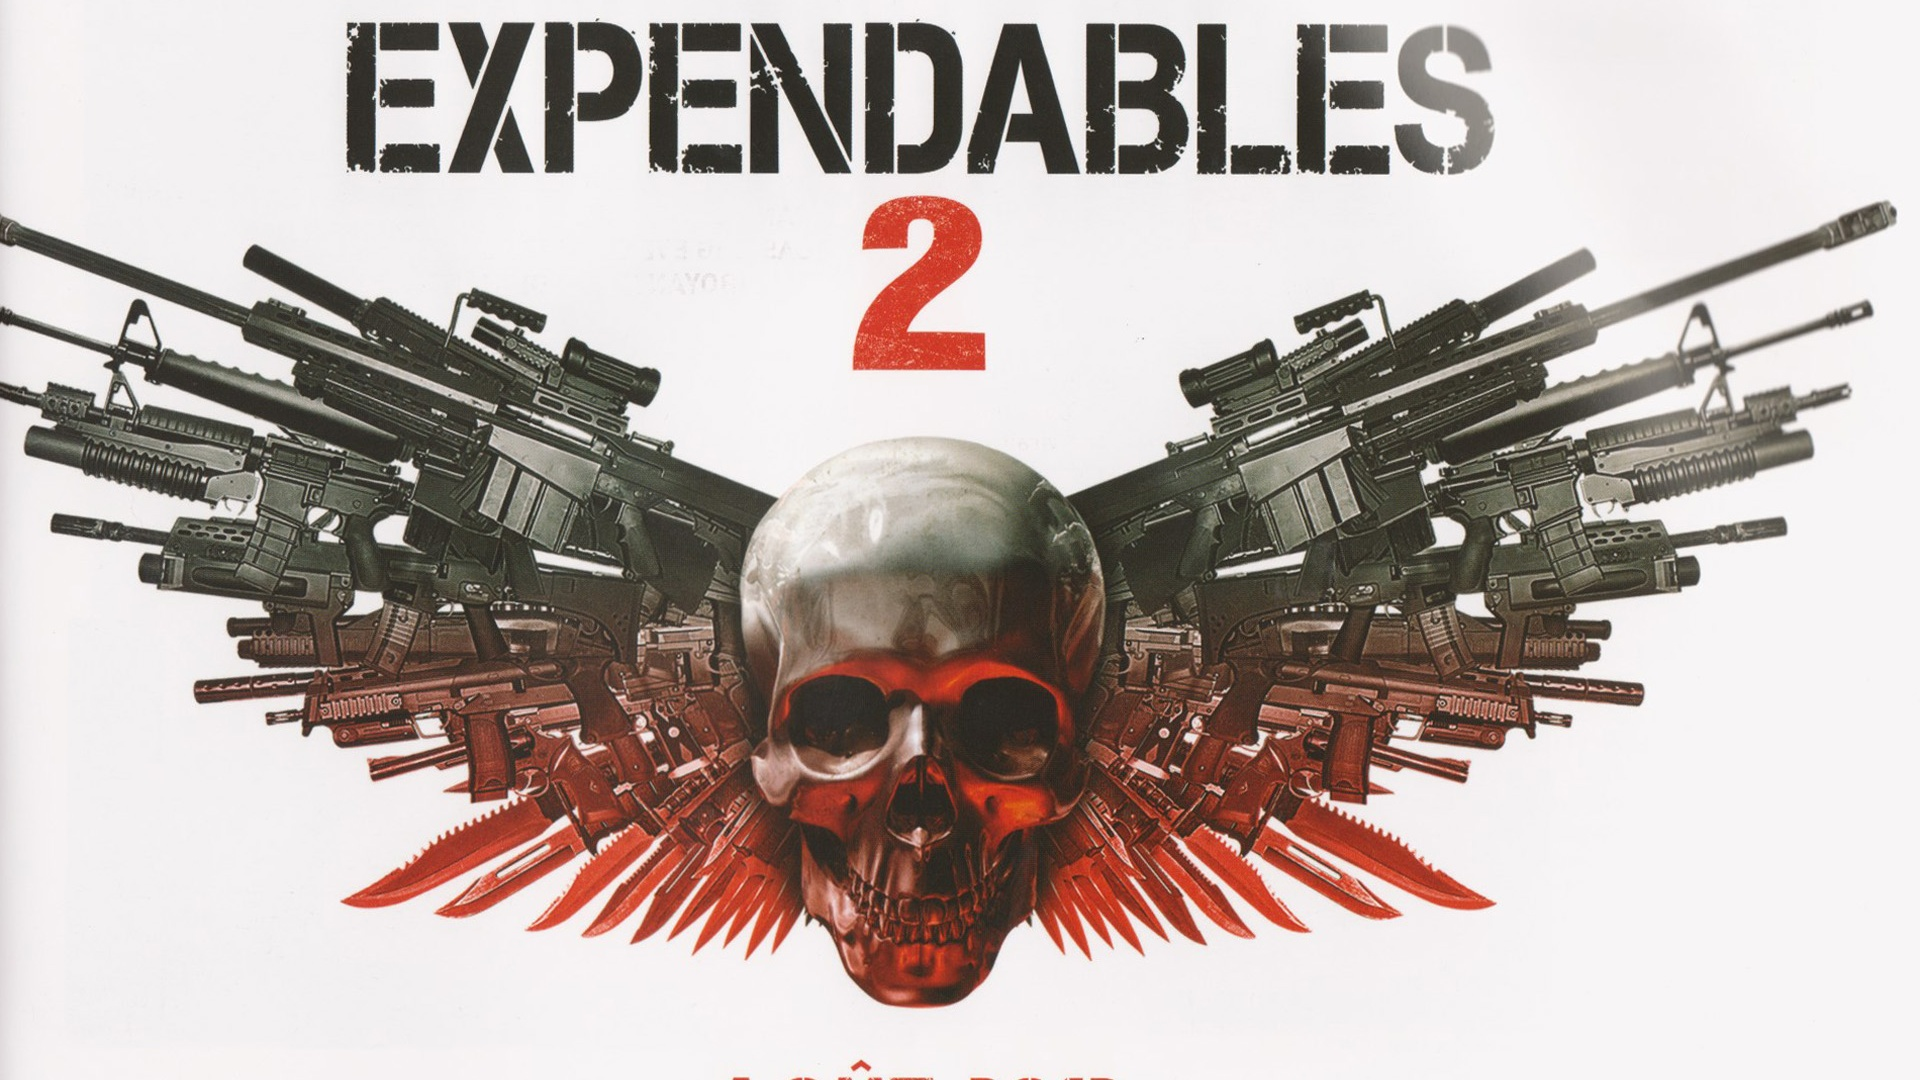 The Expendables 2 640x1136 iPhone 5/5S/5C/SE wallpaper